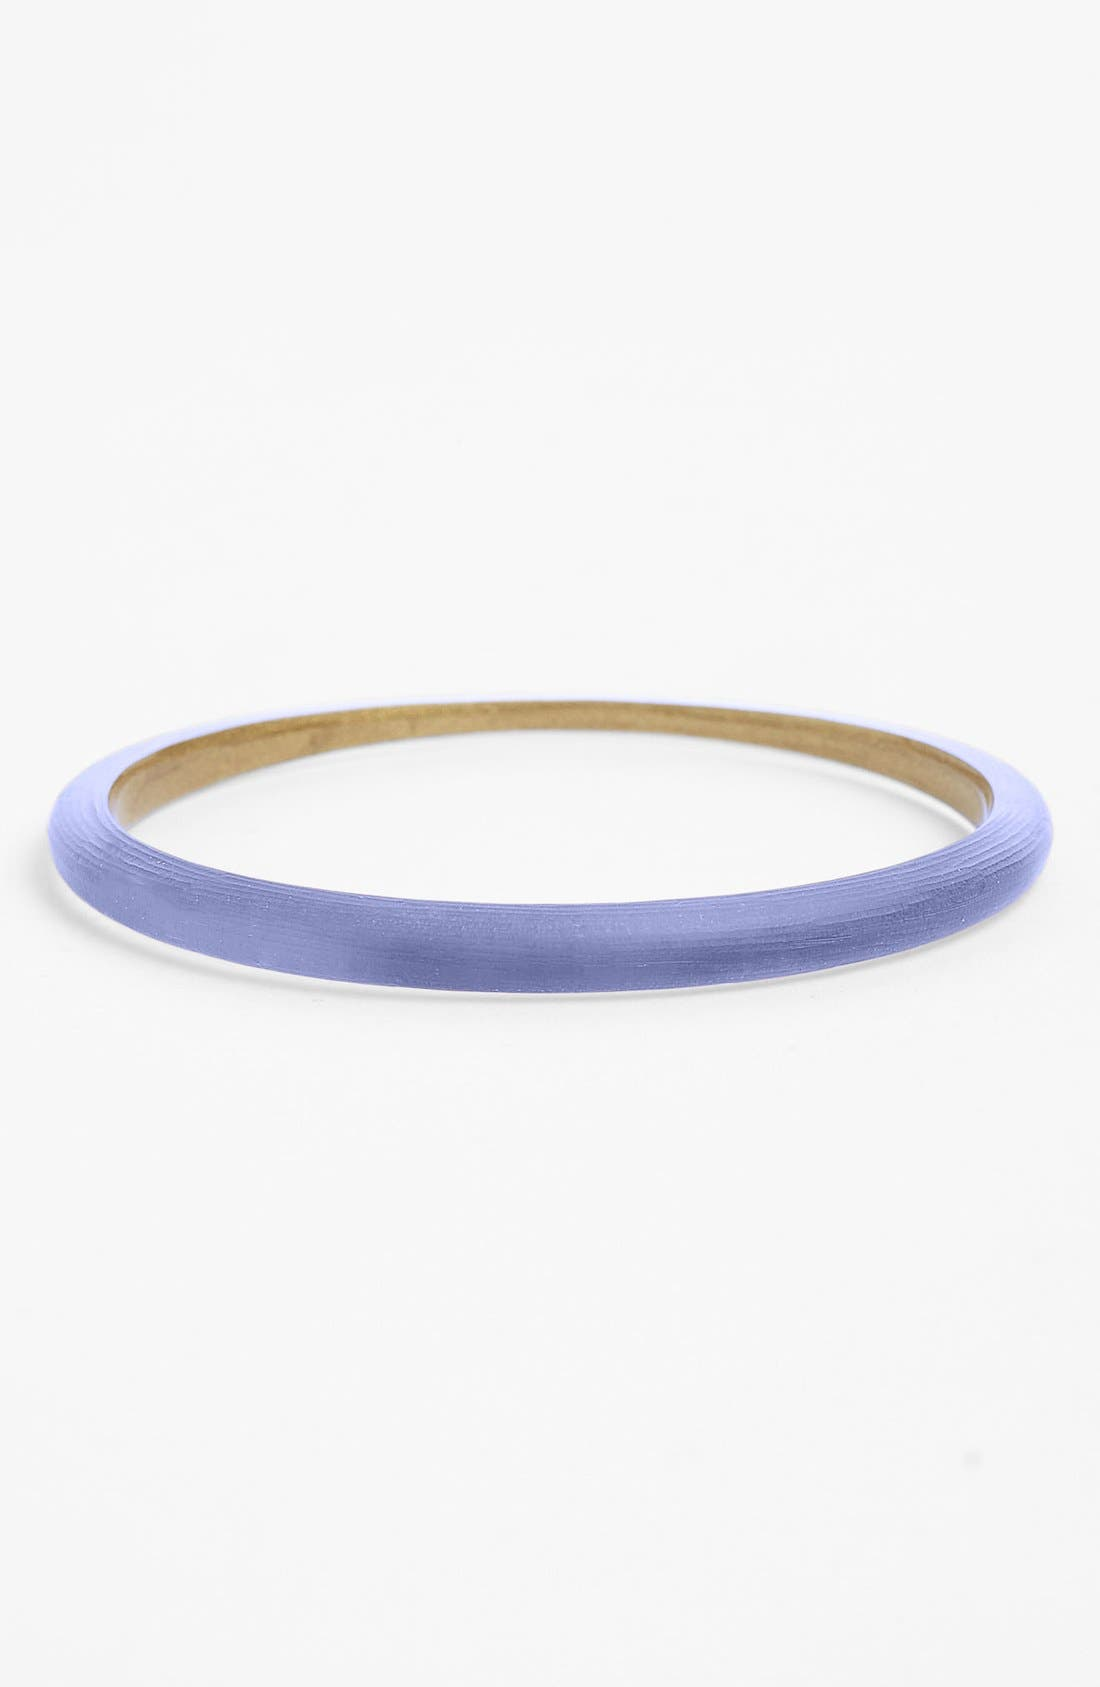 Main Image - Alexis Bittar Extra Skinny Tapered Bangle